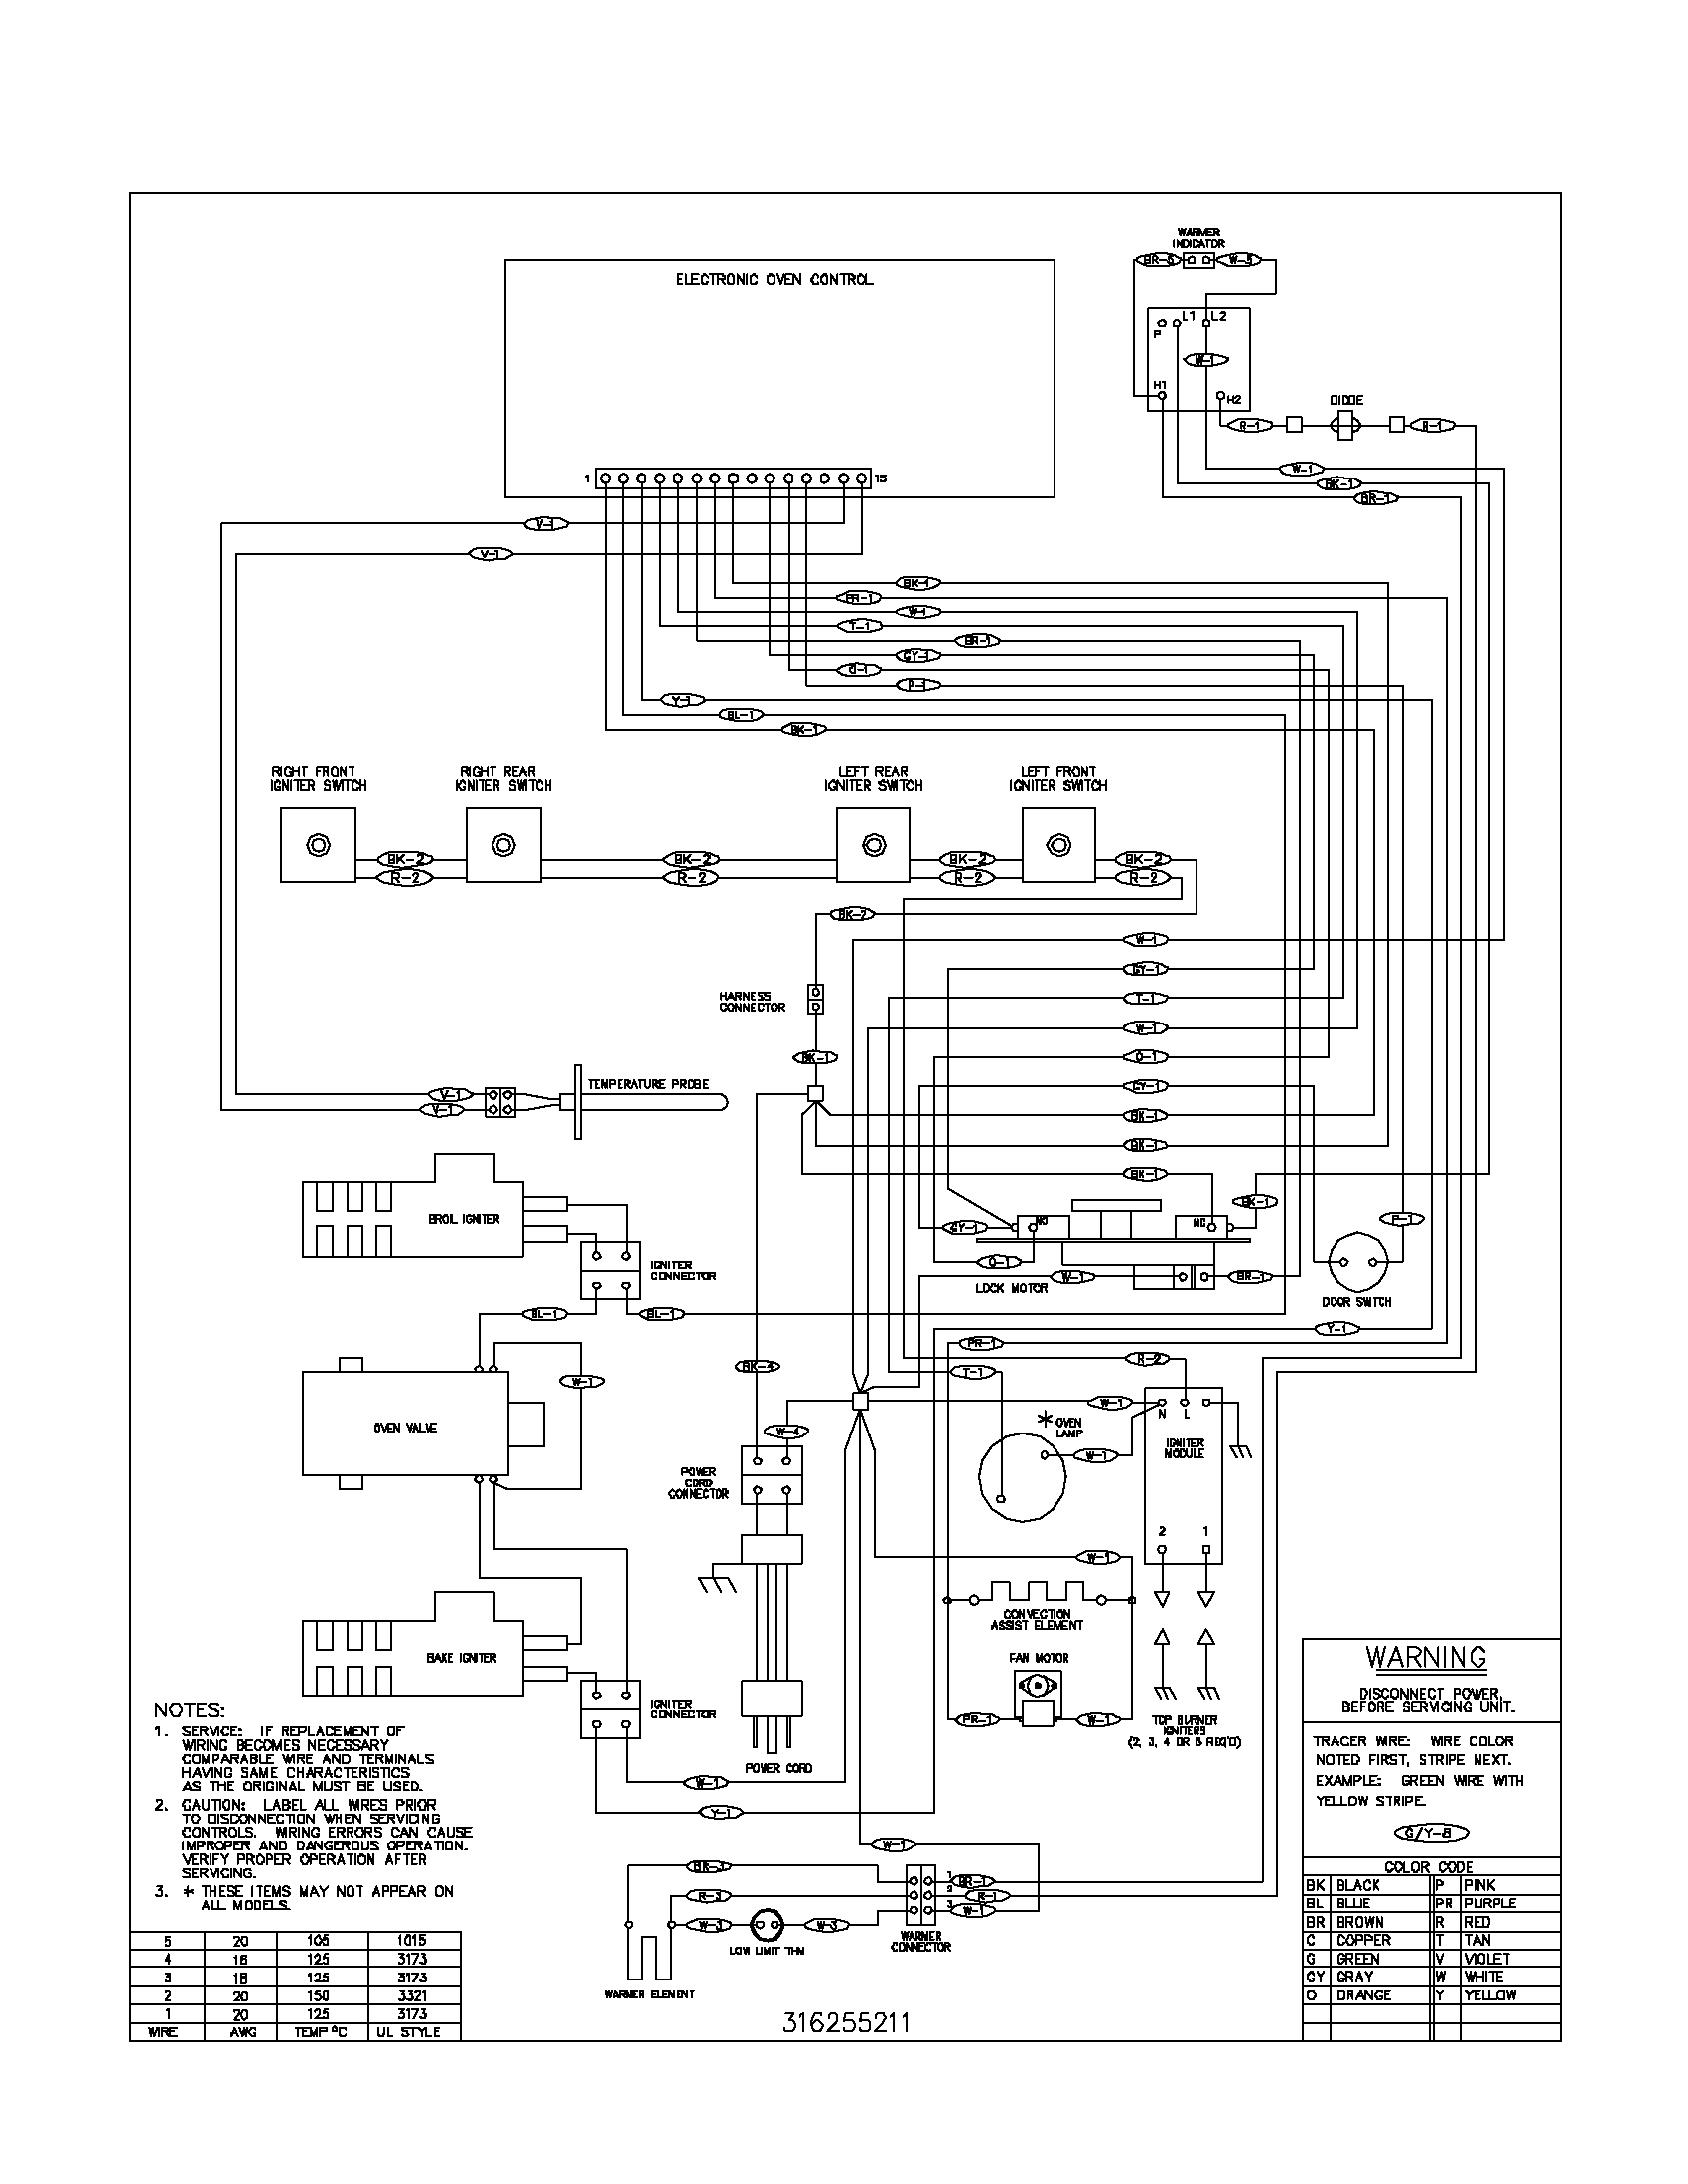 wiring wiring diagram for dryers wiring image wiring wiring diagram for frigidaire dryer the wiring diagram likewise likewise ge dryer motor replacement appliance